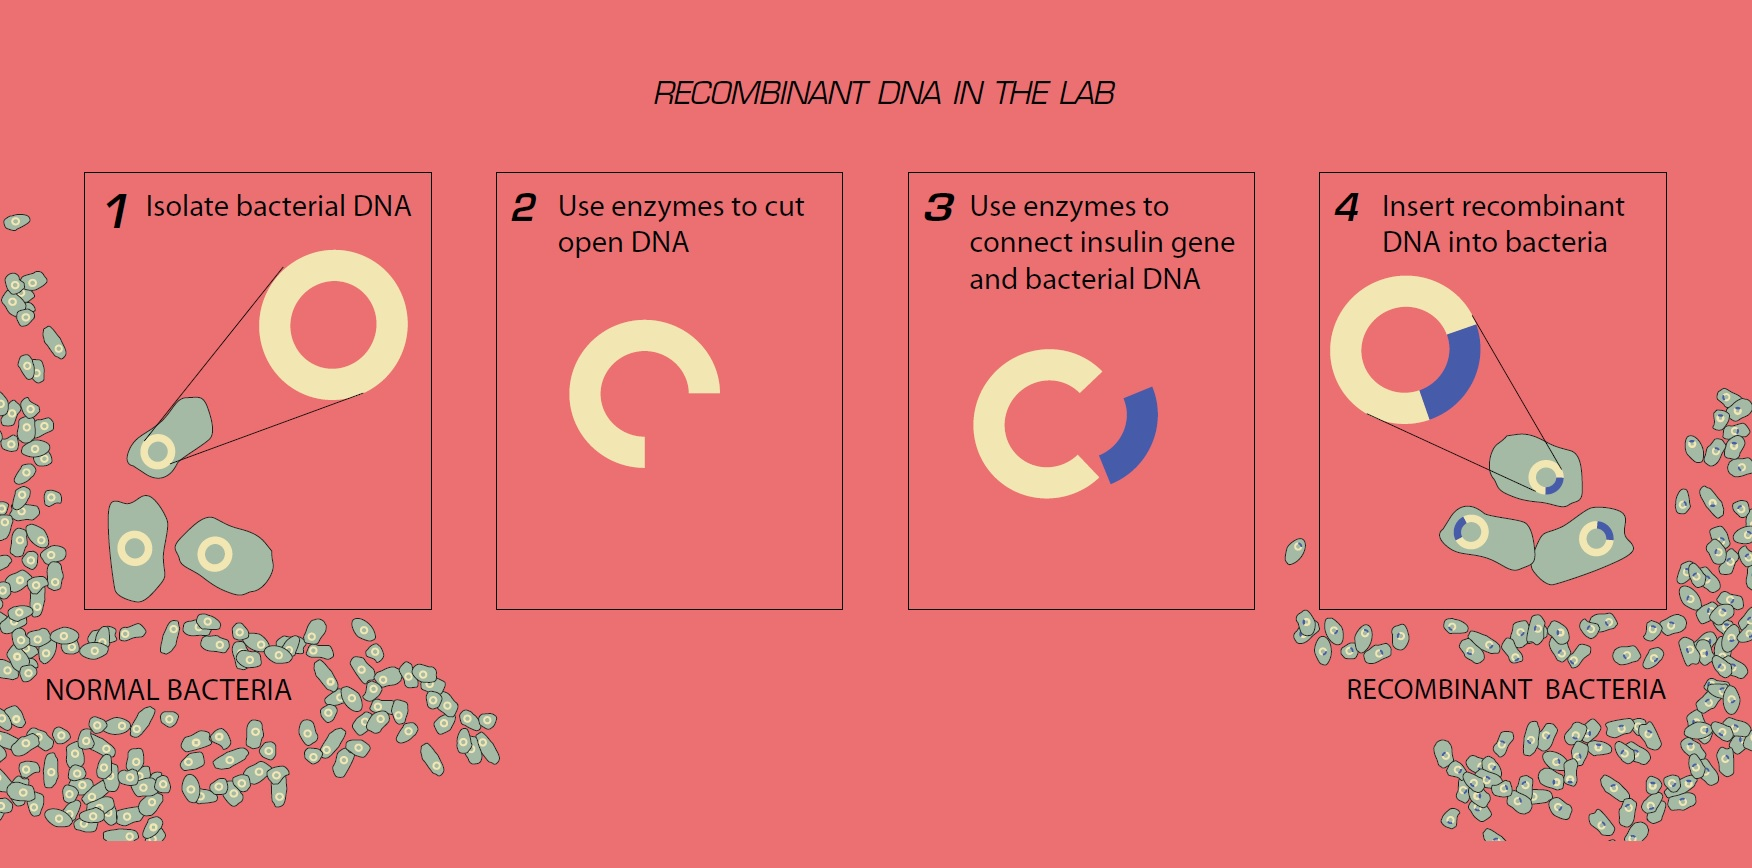 A diagram of the recombinant DNA process